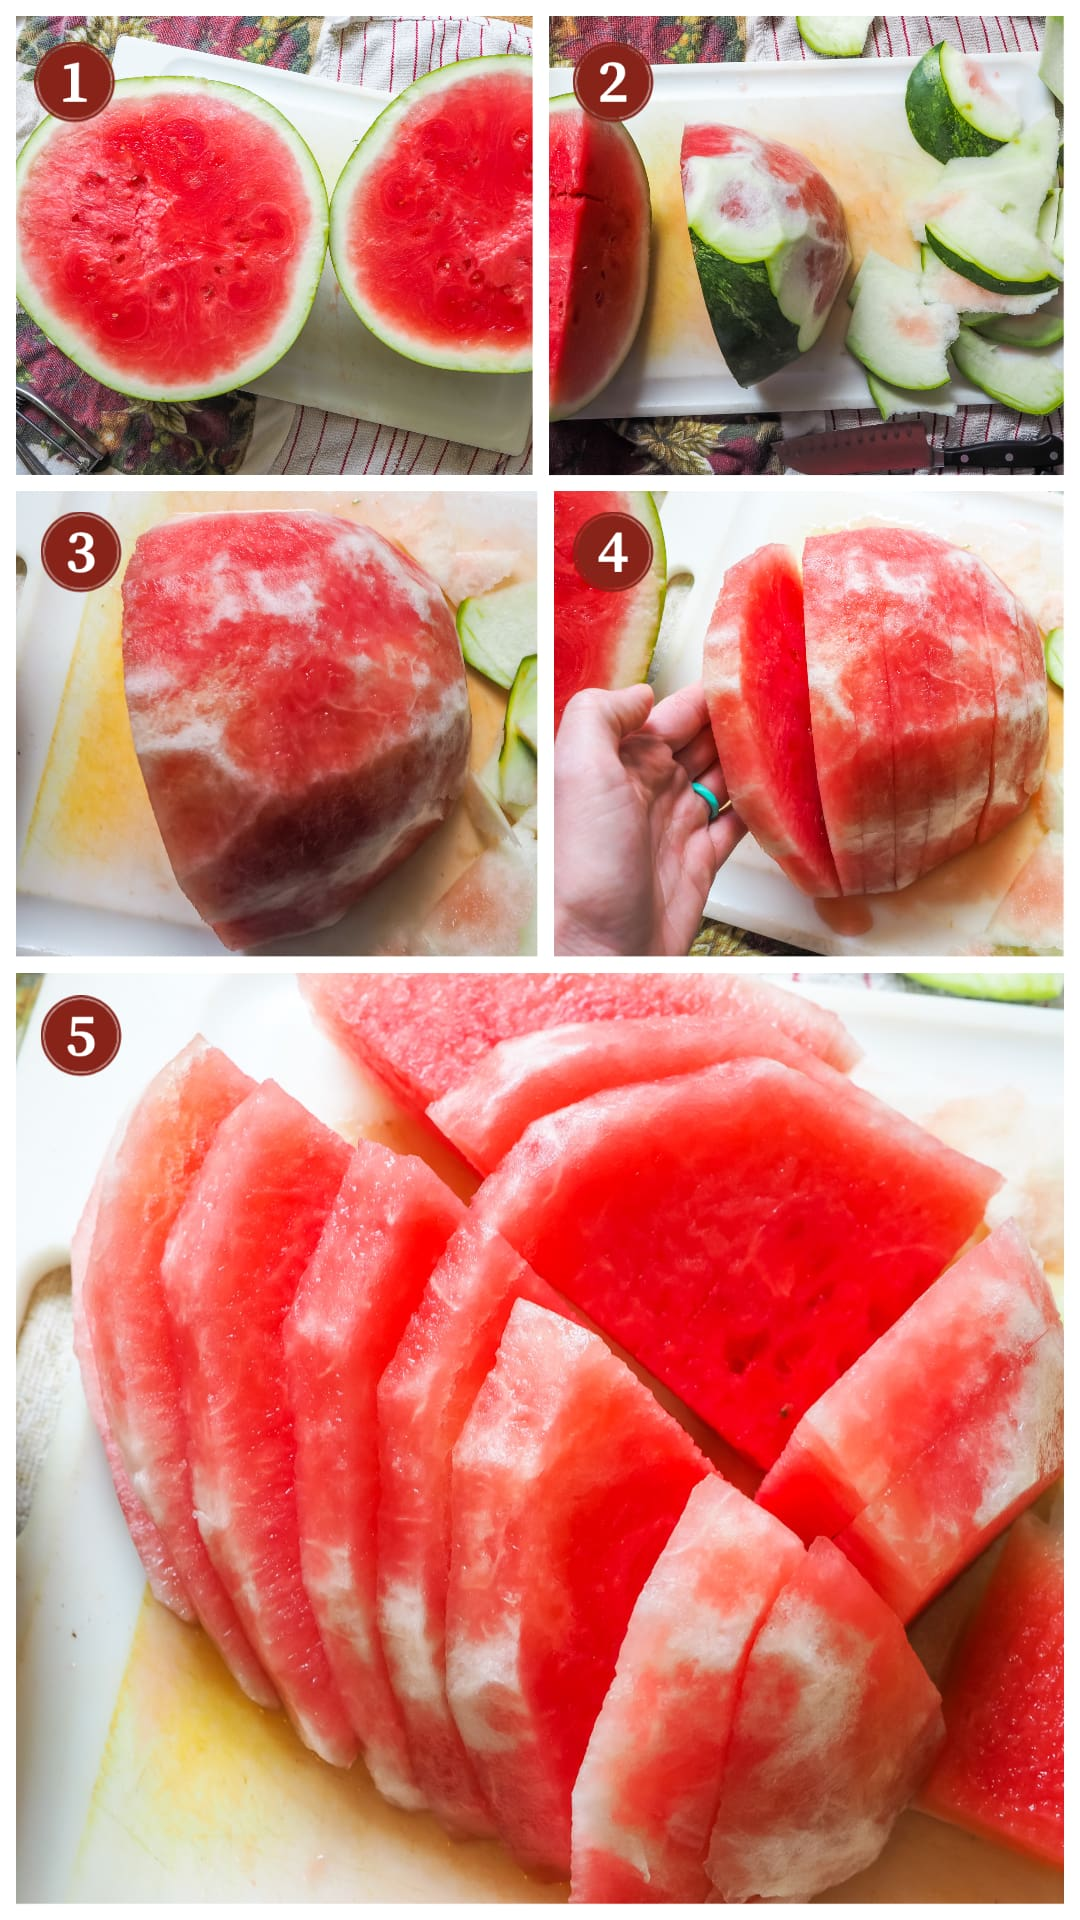 A collage of images showing the process of making dehydrated watermelon, steps 1 - 5.